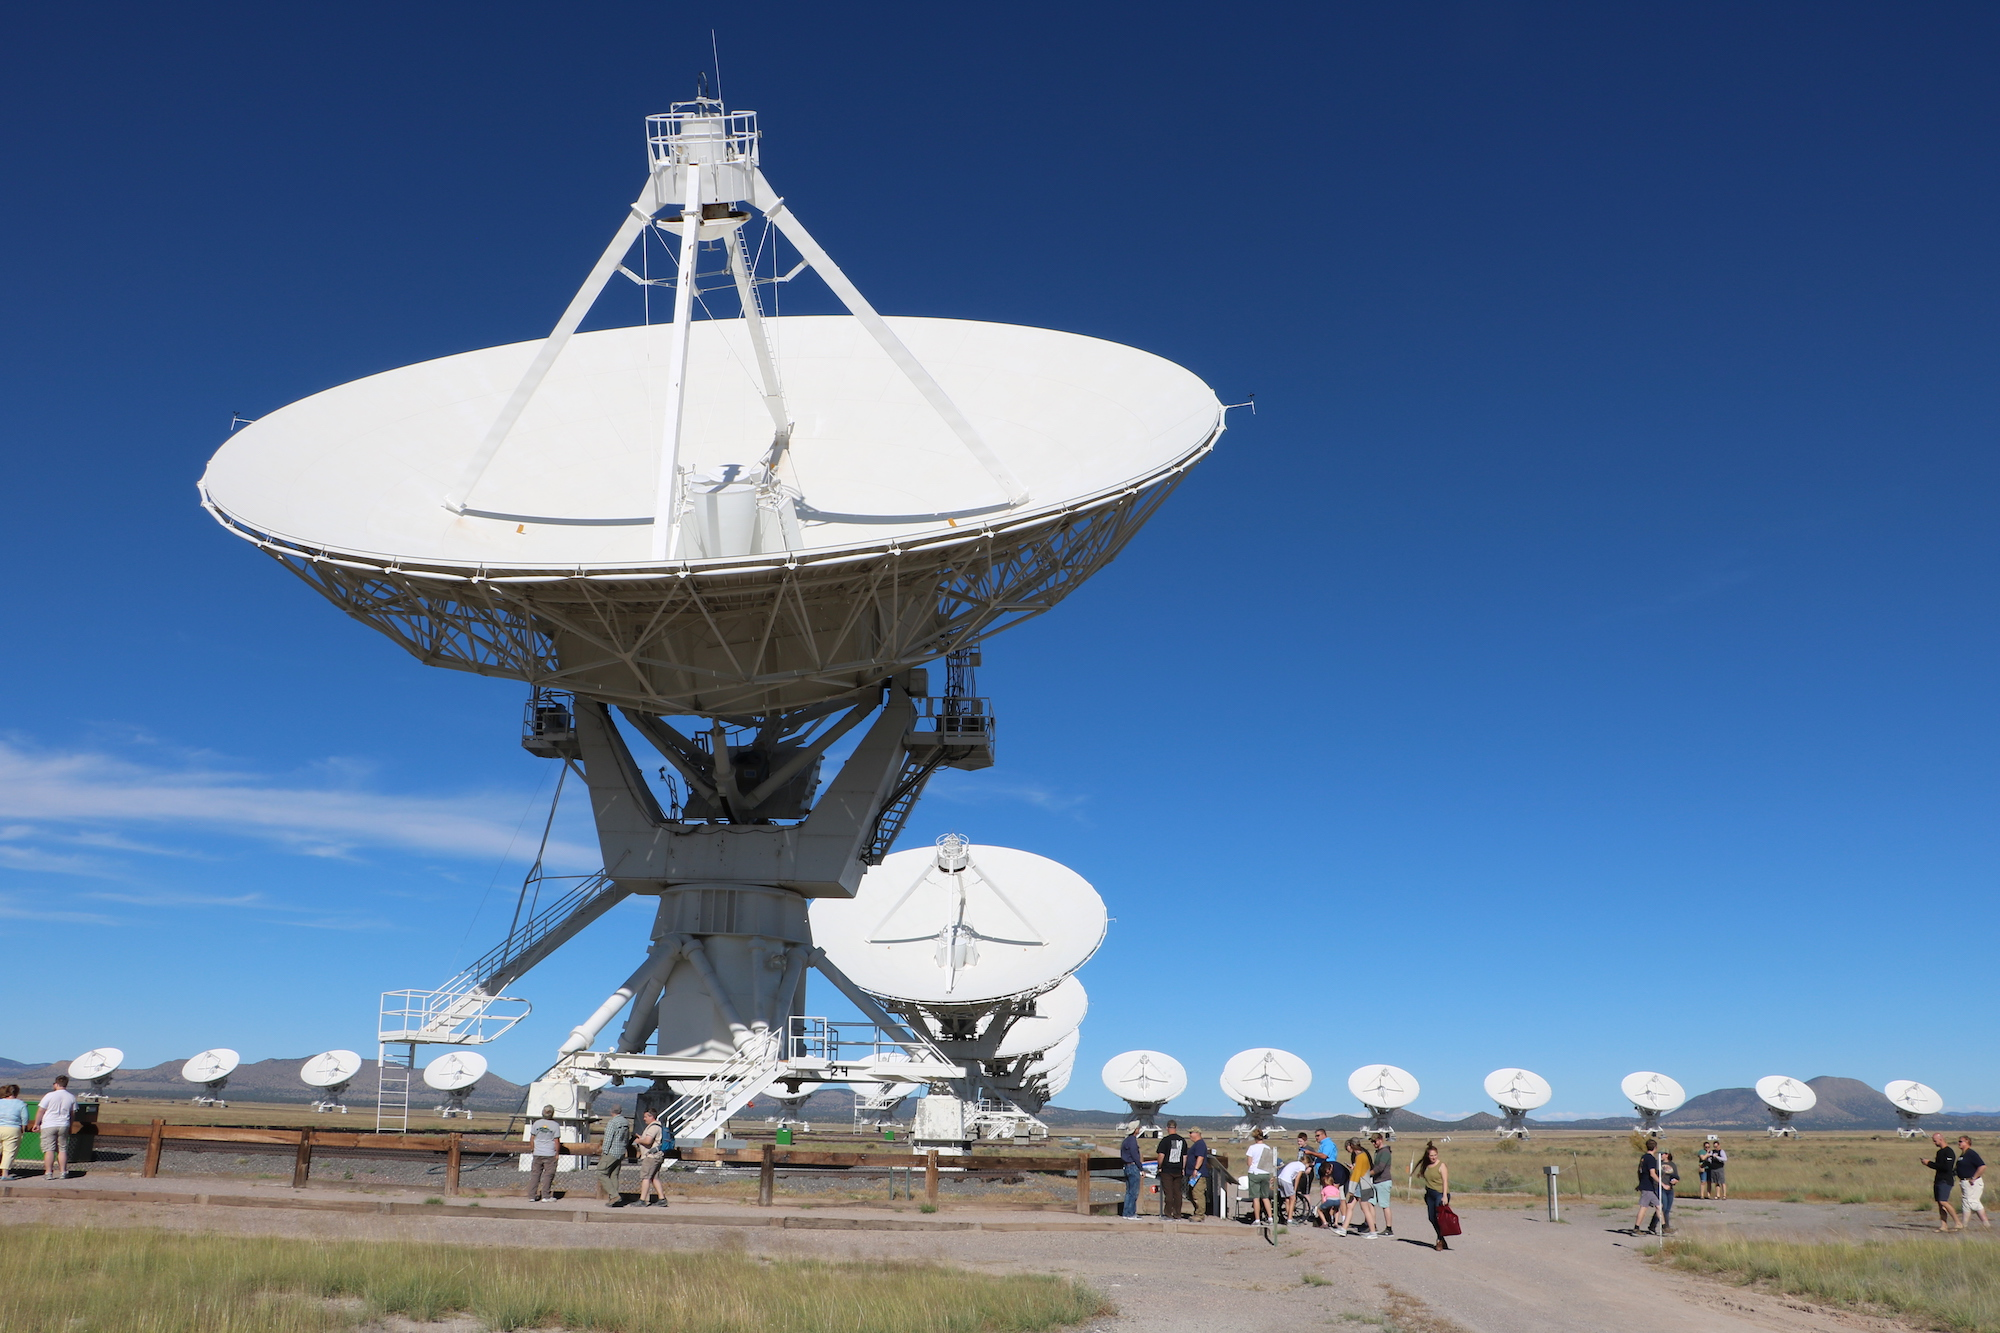 Visiting the Very Large Array - National Radio Astronomy